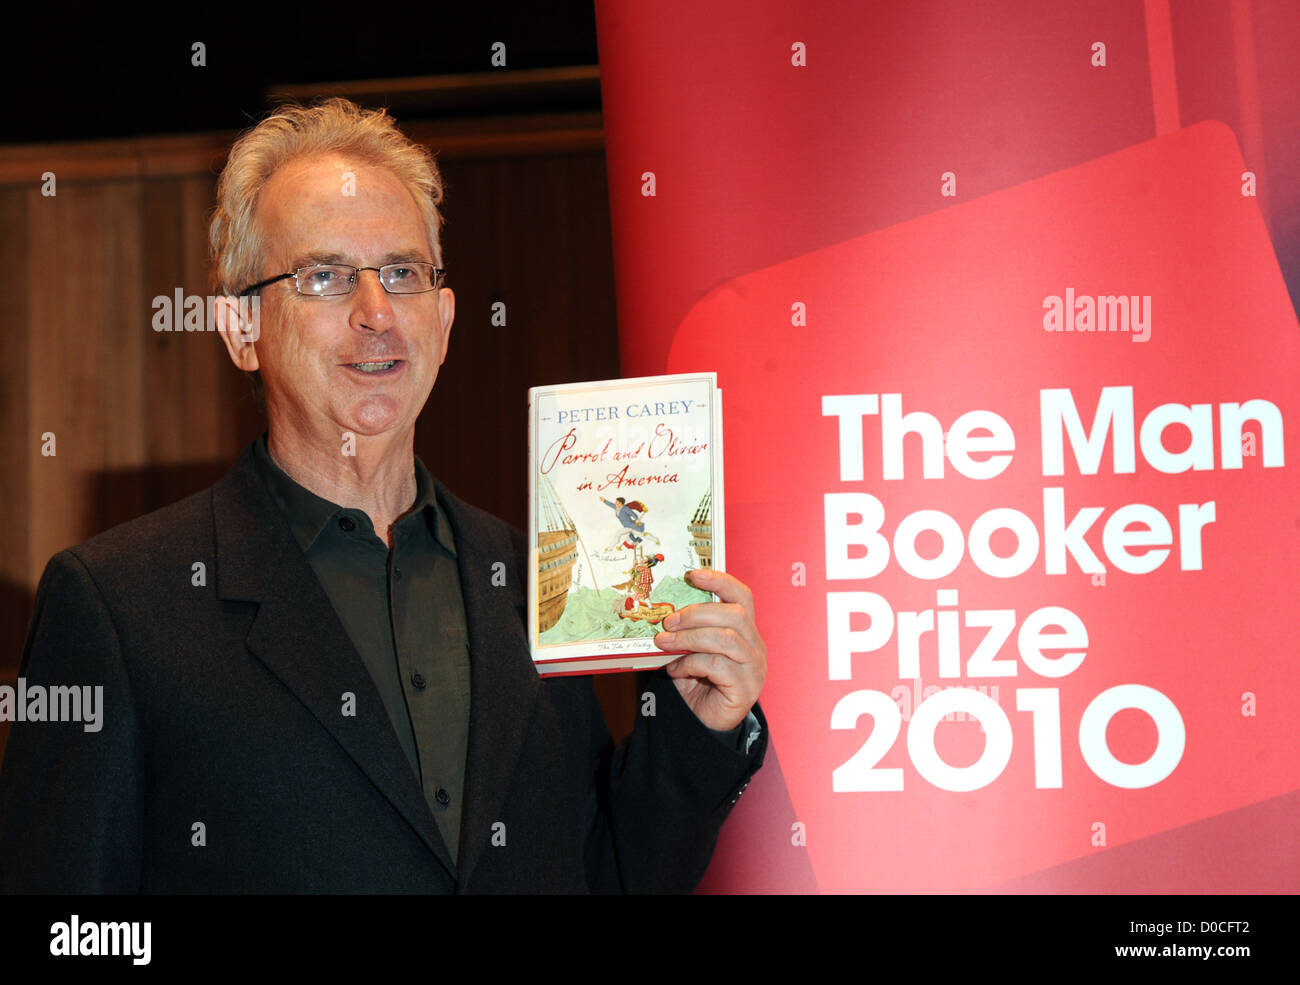 Peter Carey 'Parrot and Olivier in America' 2010 Man Booker Prize for Fiction shortlisted authors photocall - Stock Image